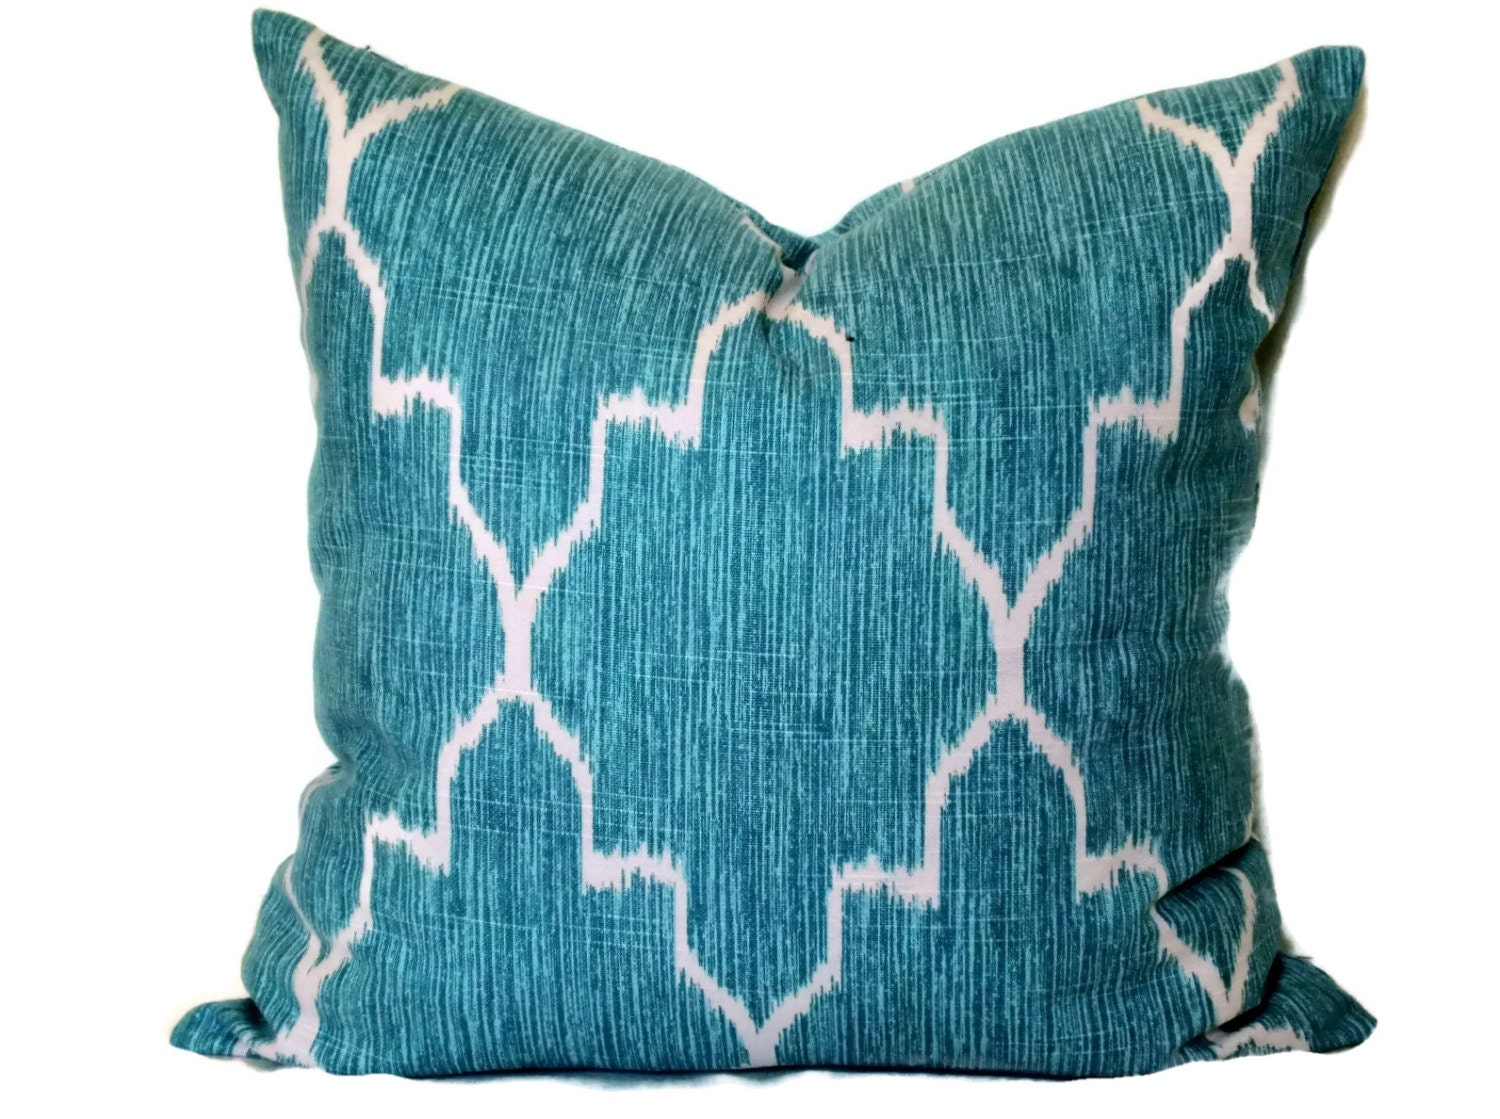 Ice Blue Throw Pillows : Ice Blue and Cream Lattice Decorative Pillow Covers 18x18